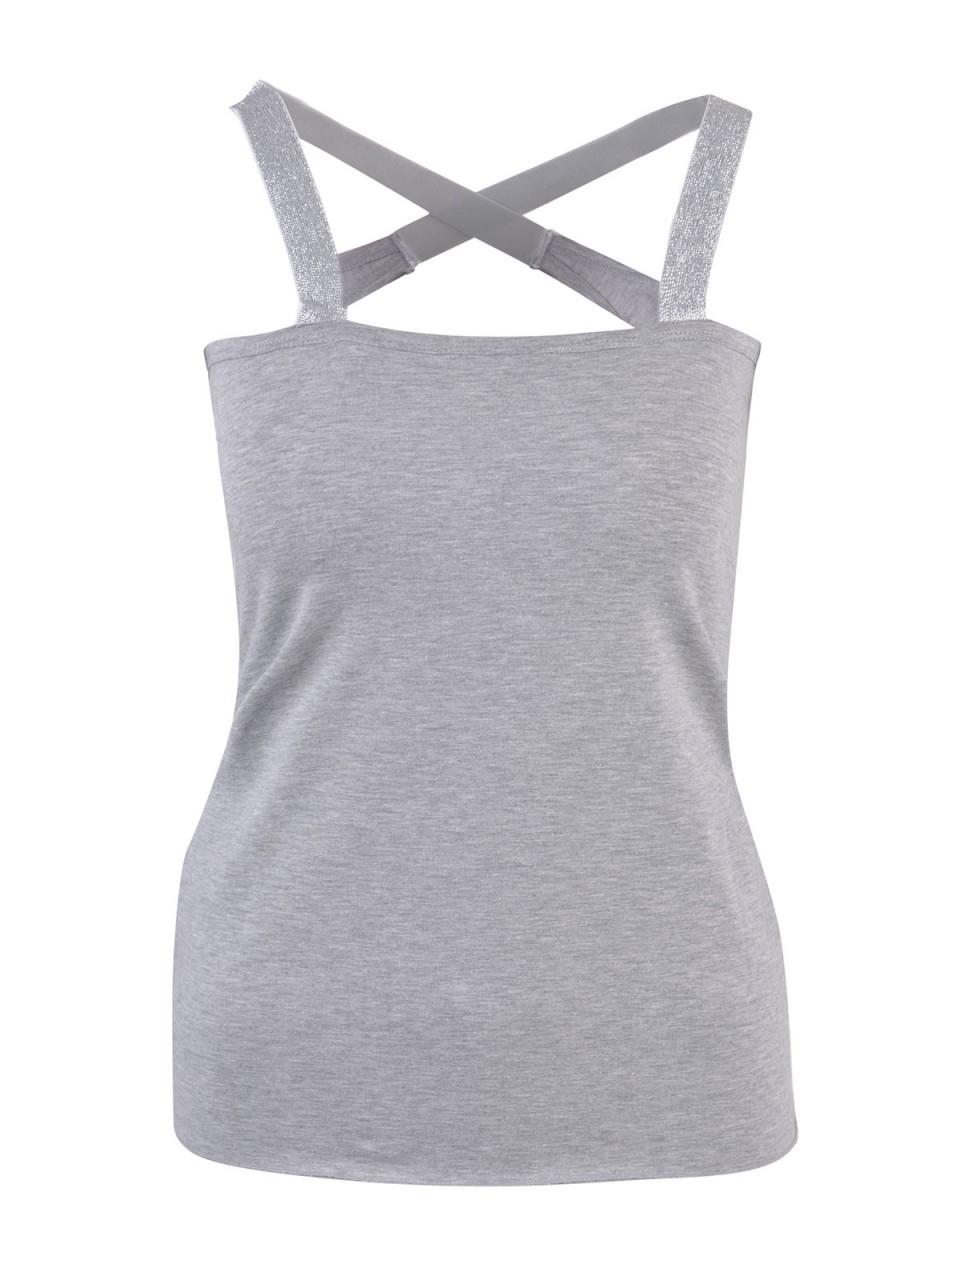 Oberteile - SMITH SOUL Damen Top, grau  - Onlineshop Designermode.com